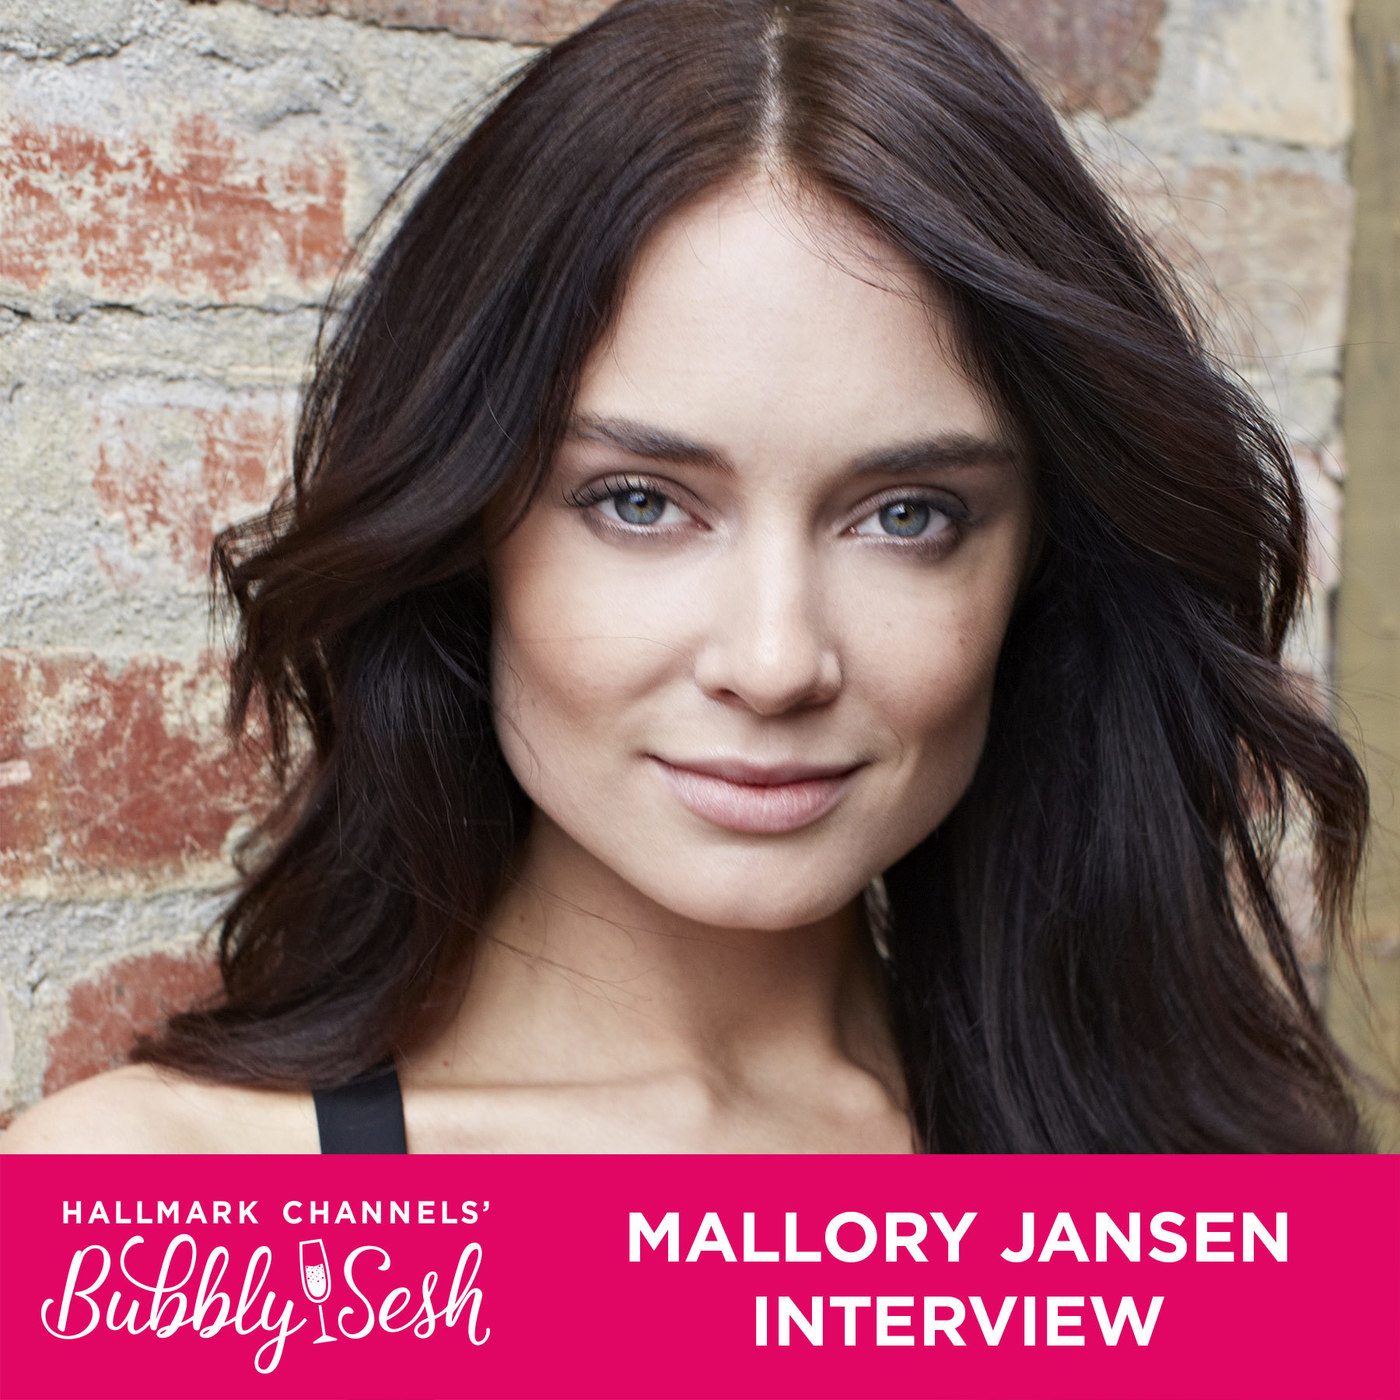 Mallory Jansen Interview